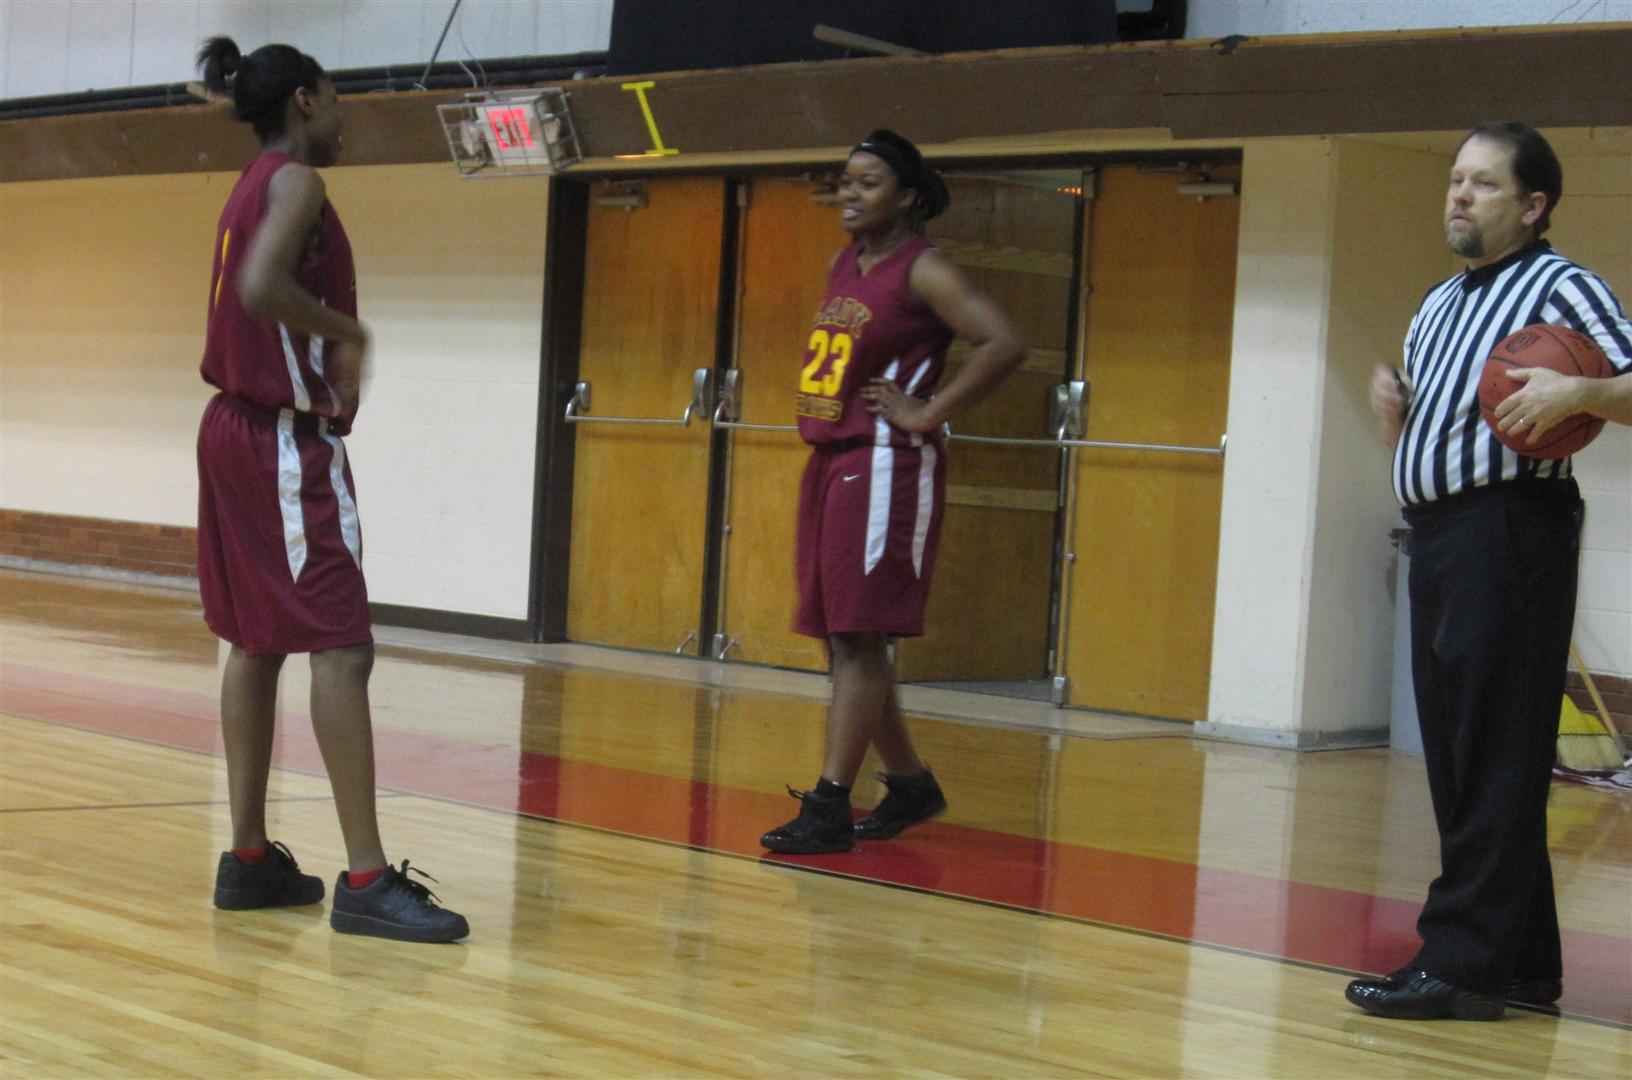 sequoia-holmes-and-unk-basketball